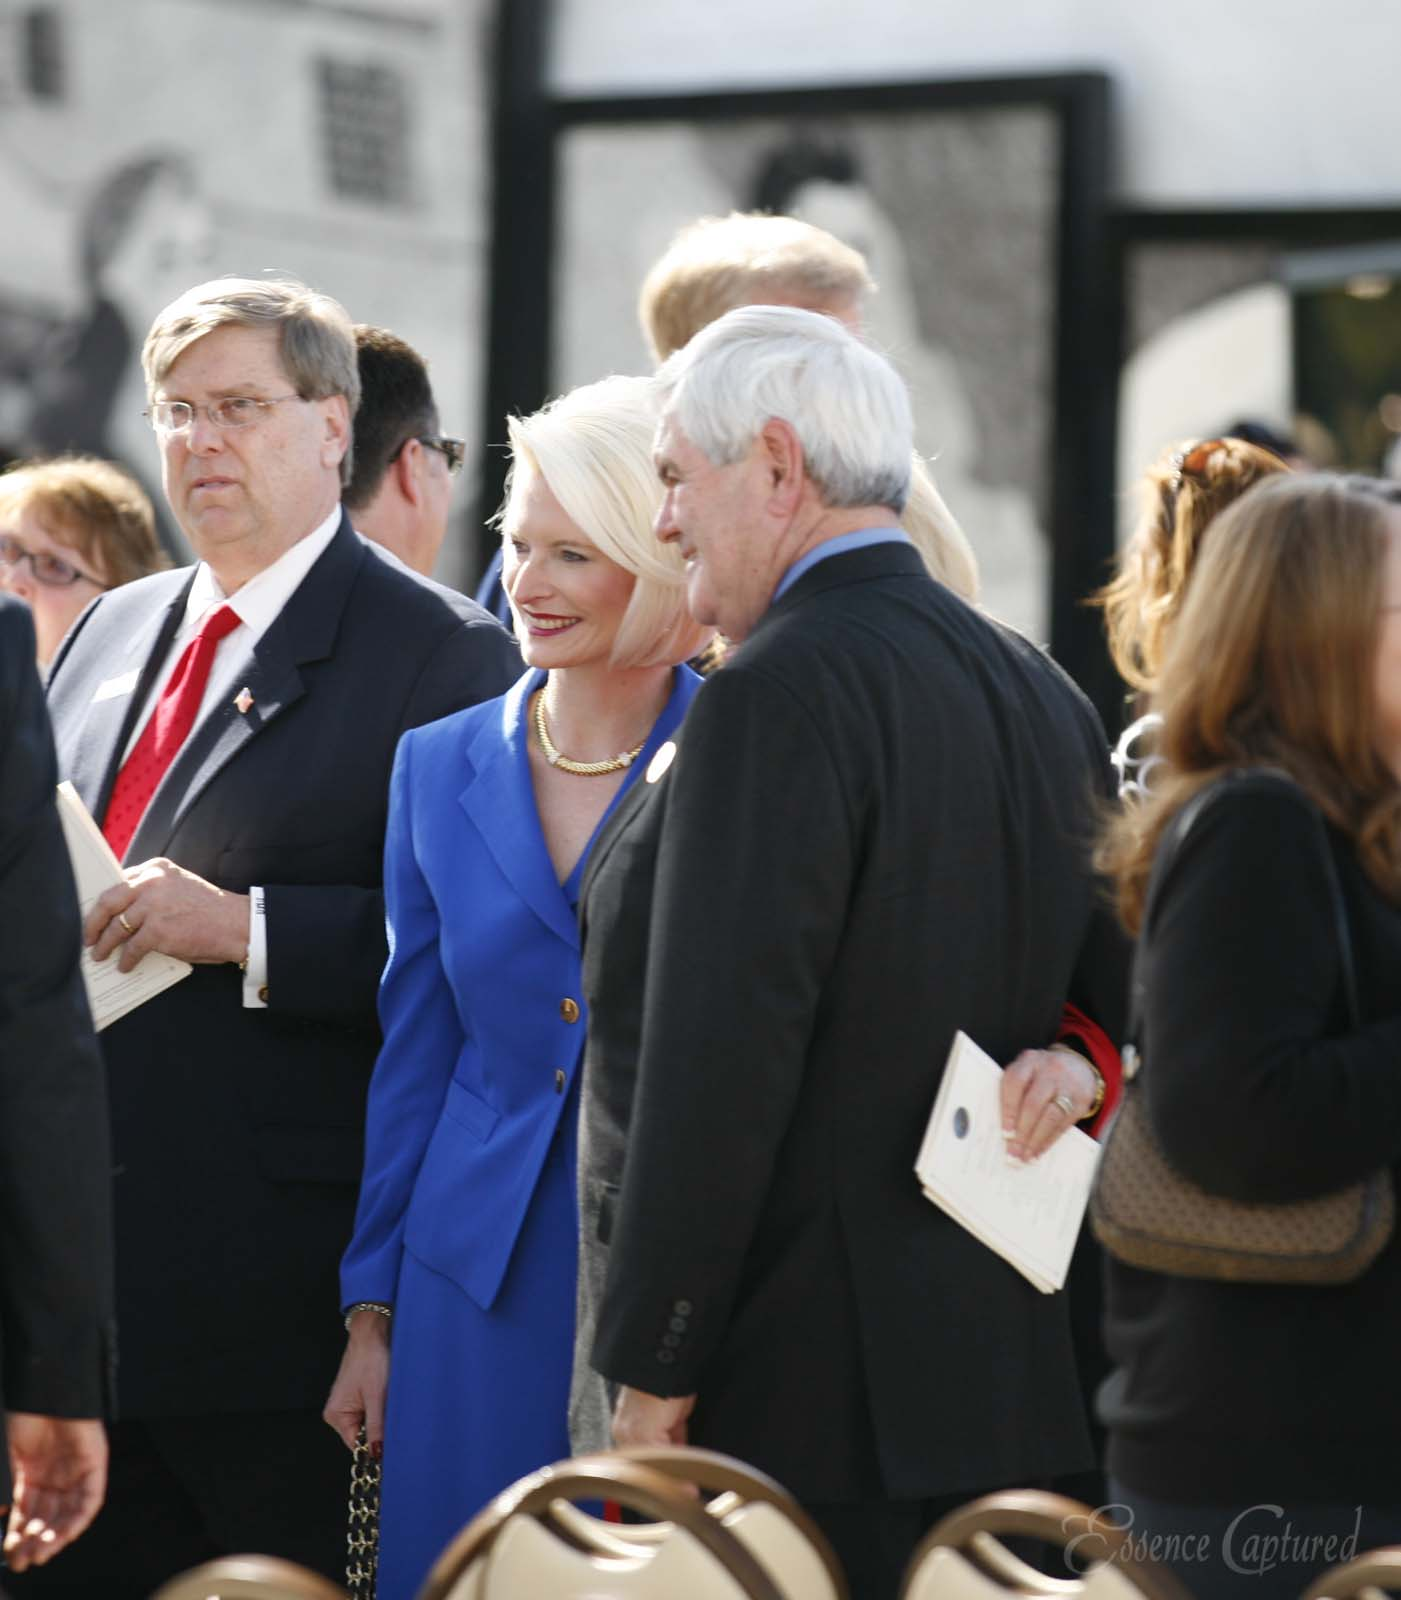 Newt Gingrich Former Speaker of the United States House of Representatives and wife Callista at event